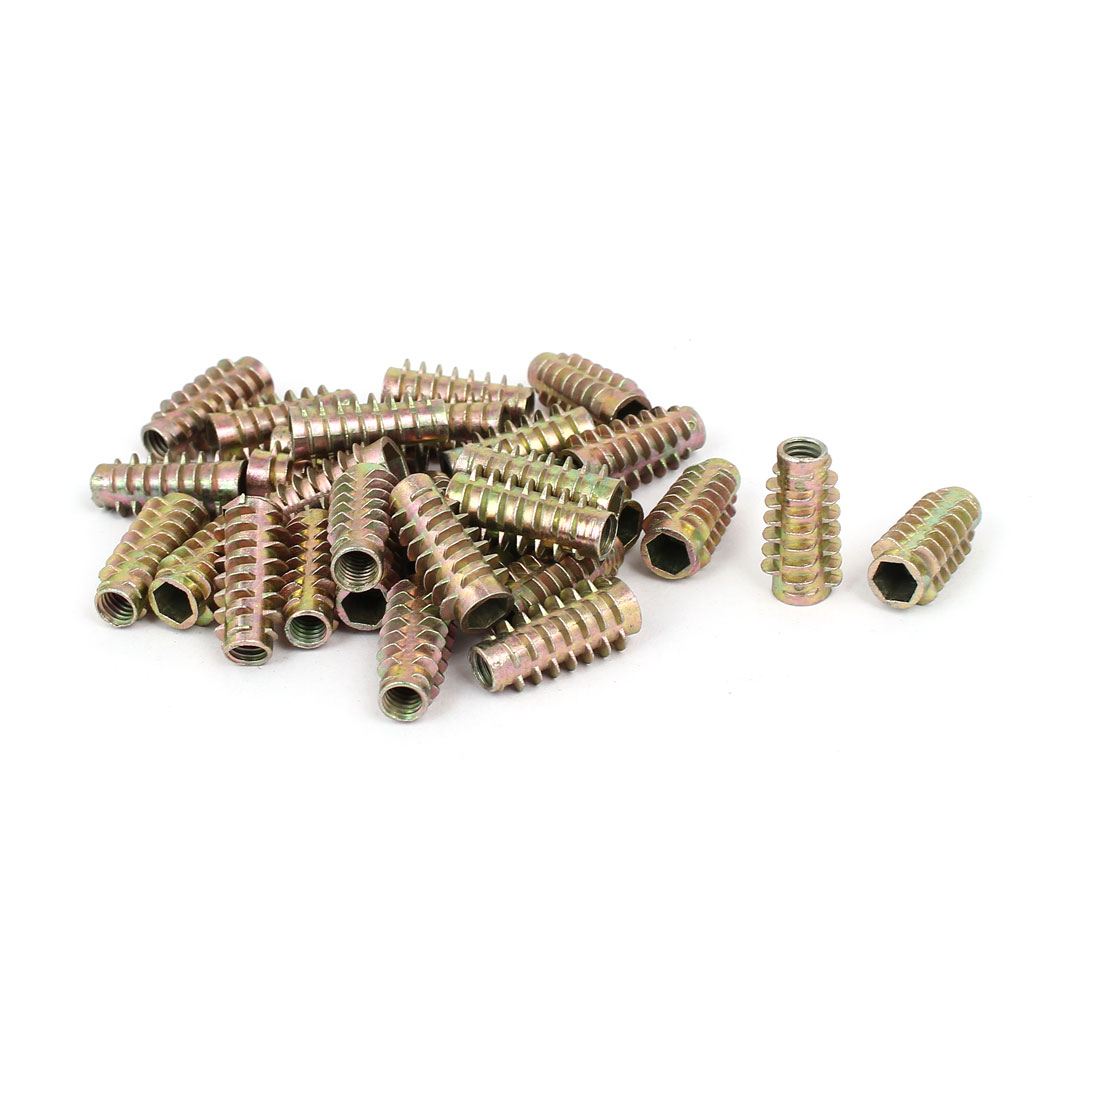 Wood Furniture Zinc Alloy Hex Socket Insert Screws E-Nuts M6x25mm 30pcs